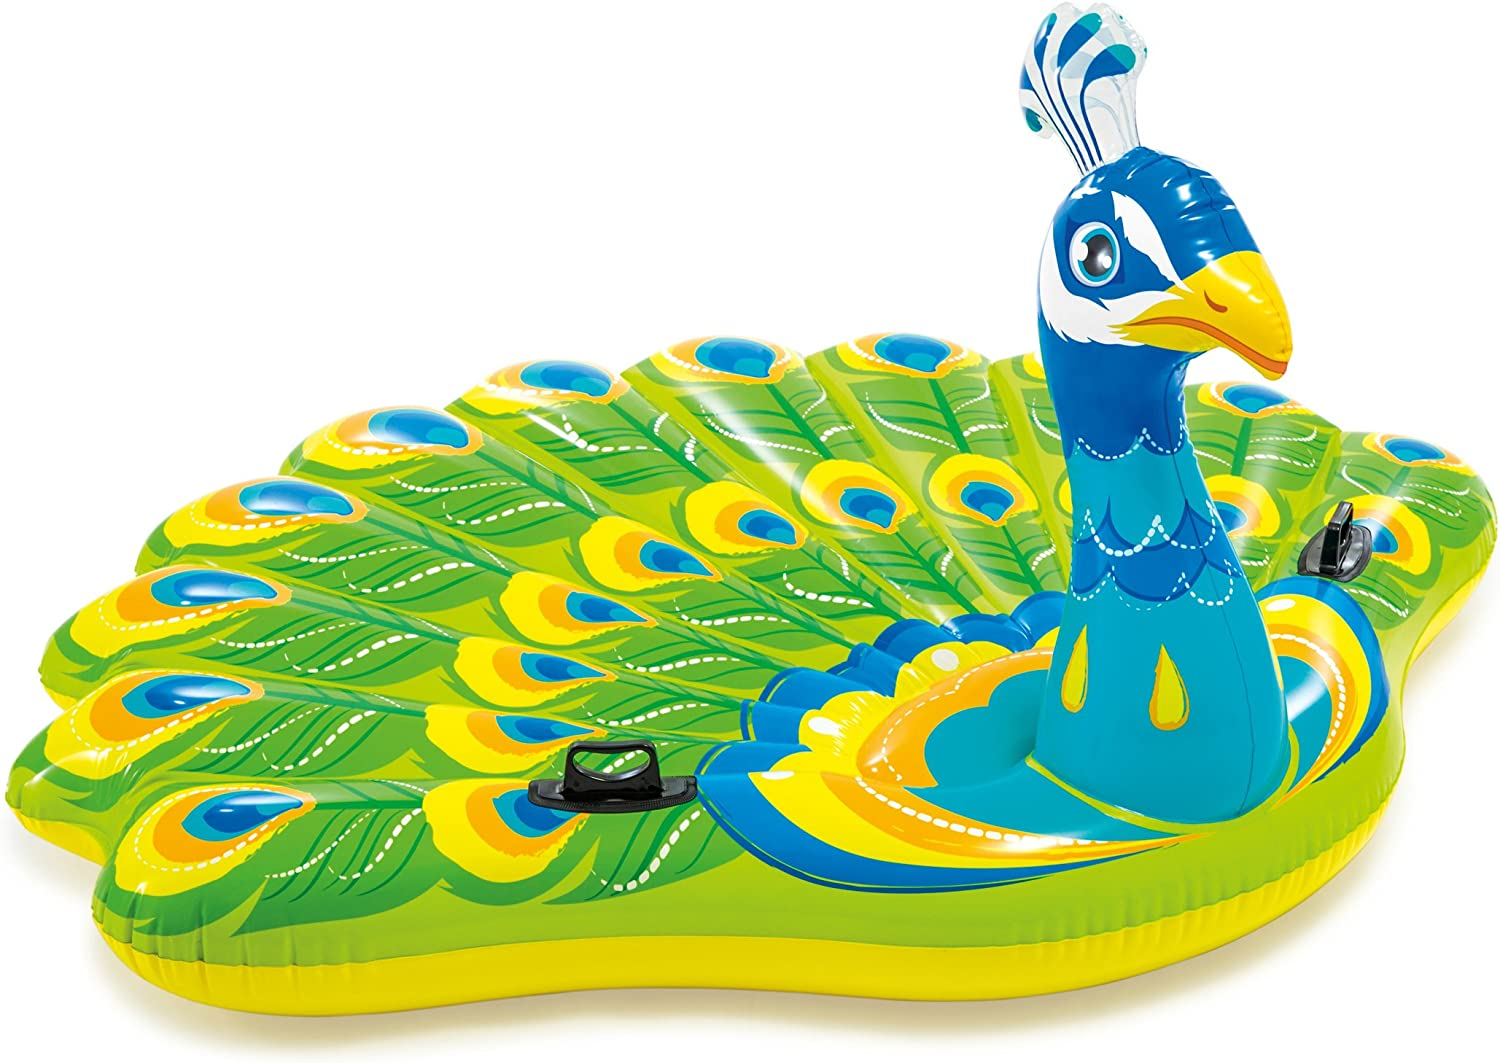 """Intex Peacock Inflatable Island, 76"""" X 64"""" X 37"""", for Ages 6+"""